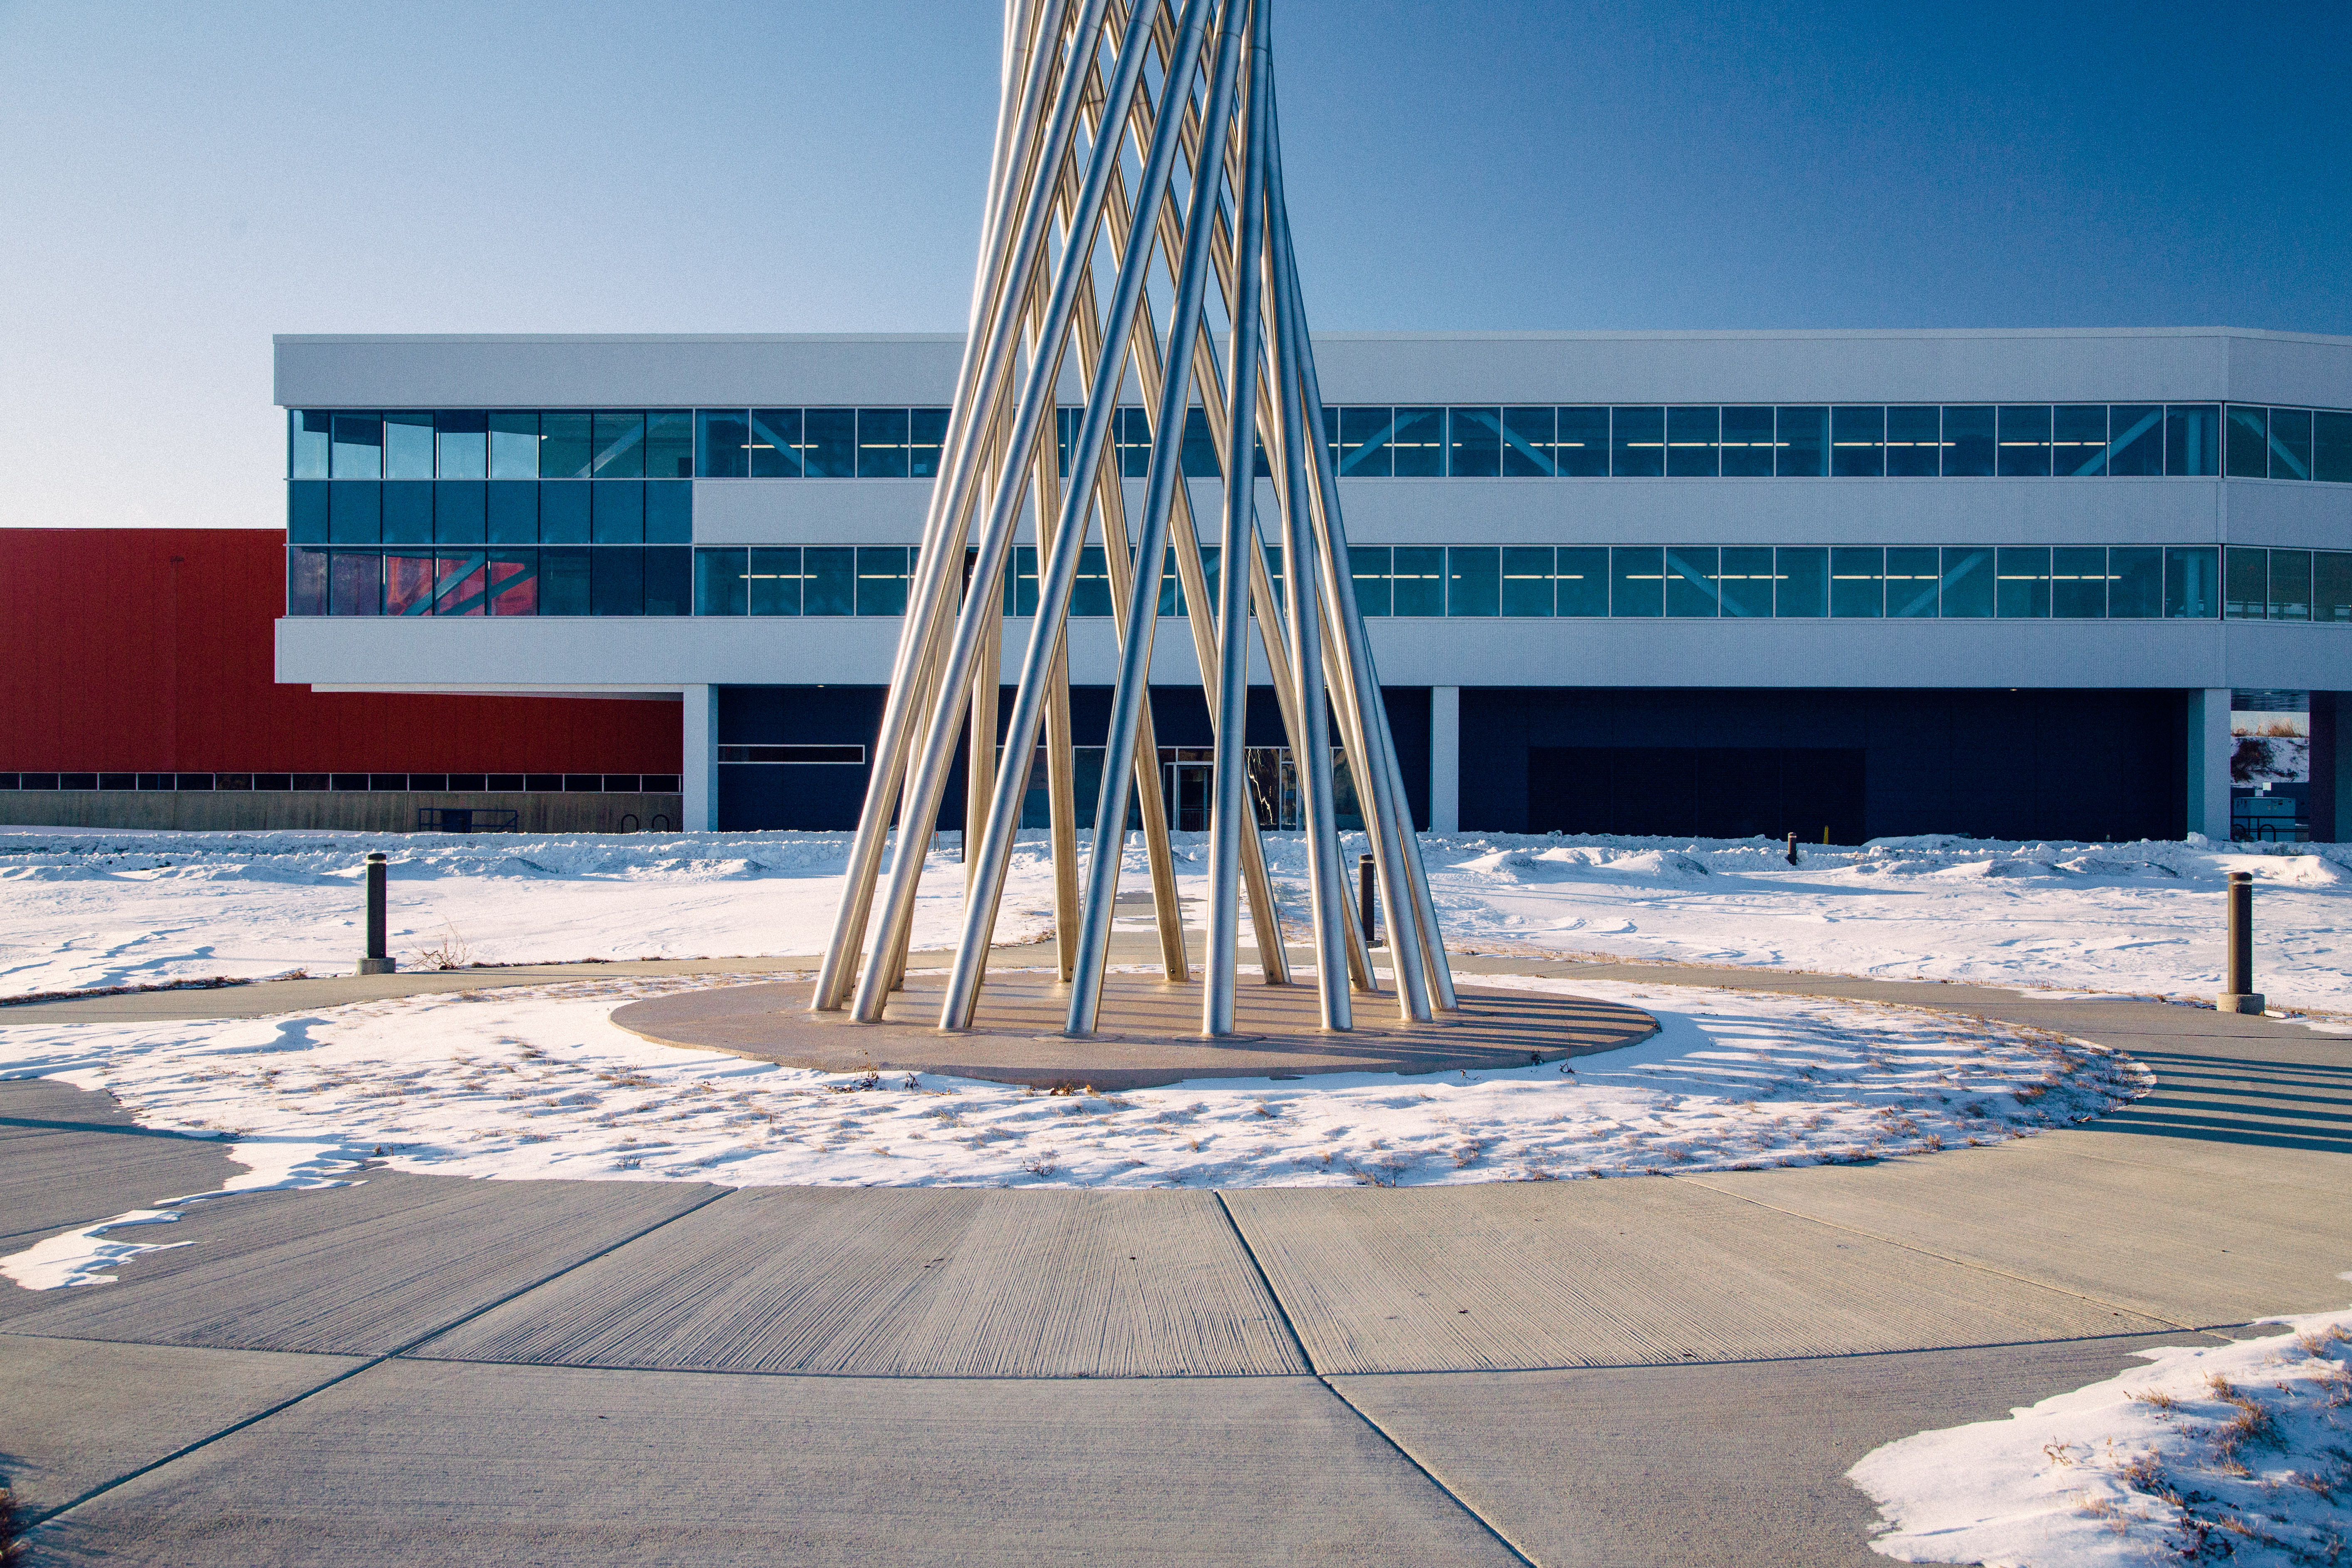 The lines of the IARC Office, Technical and Education Building complement those of the Tractricious sculpture. Photo: Tom Nicol, TD